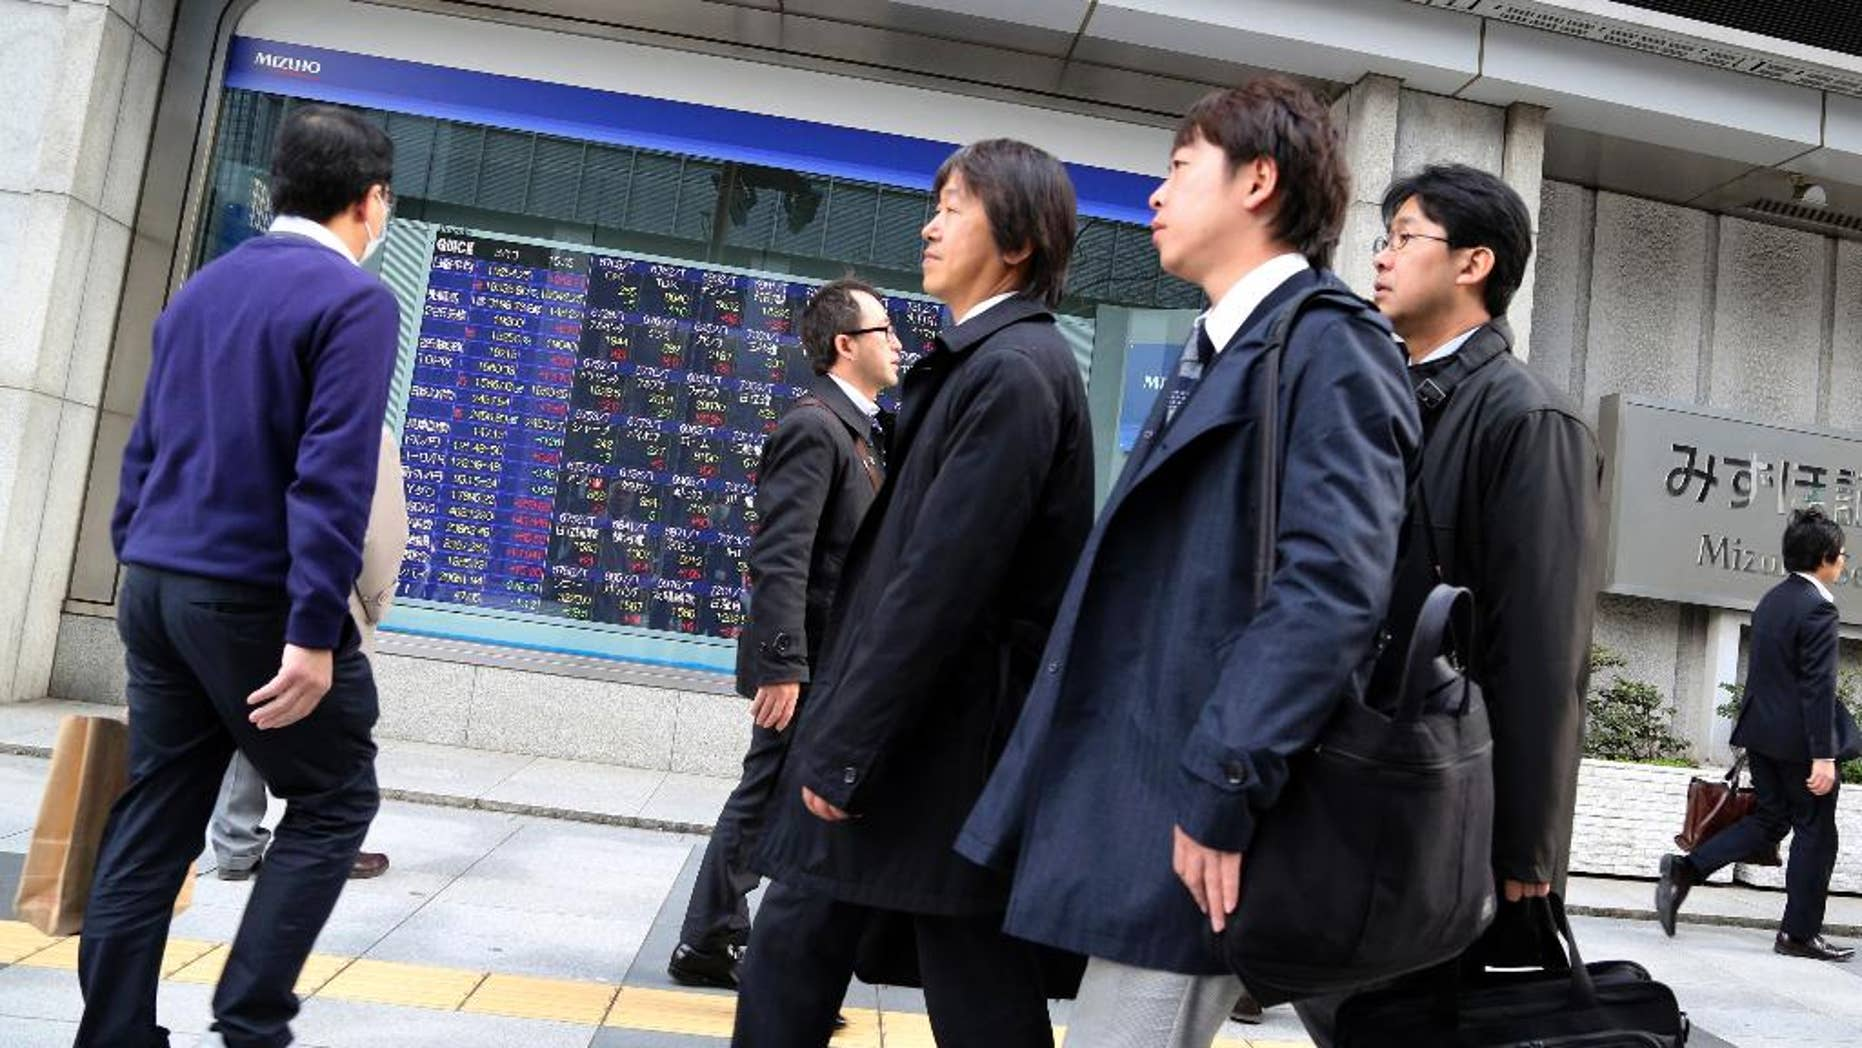 People walk by an electronic stock board of a securities firm in Tokyo, Friday, March 13, 2015. Asian stock markets mostly rose Friday after weak U.S. retail sales alleviated jitters about the Federal Reserve's timetable for raising interest rates. Japan's Nikkei 225 rose 1.4 percent to 19,254.25. (AP Photo/Koji Sasahara)